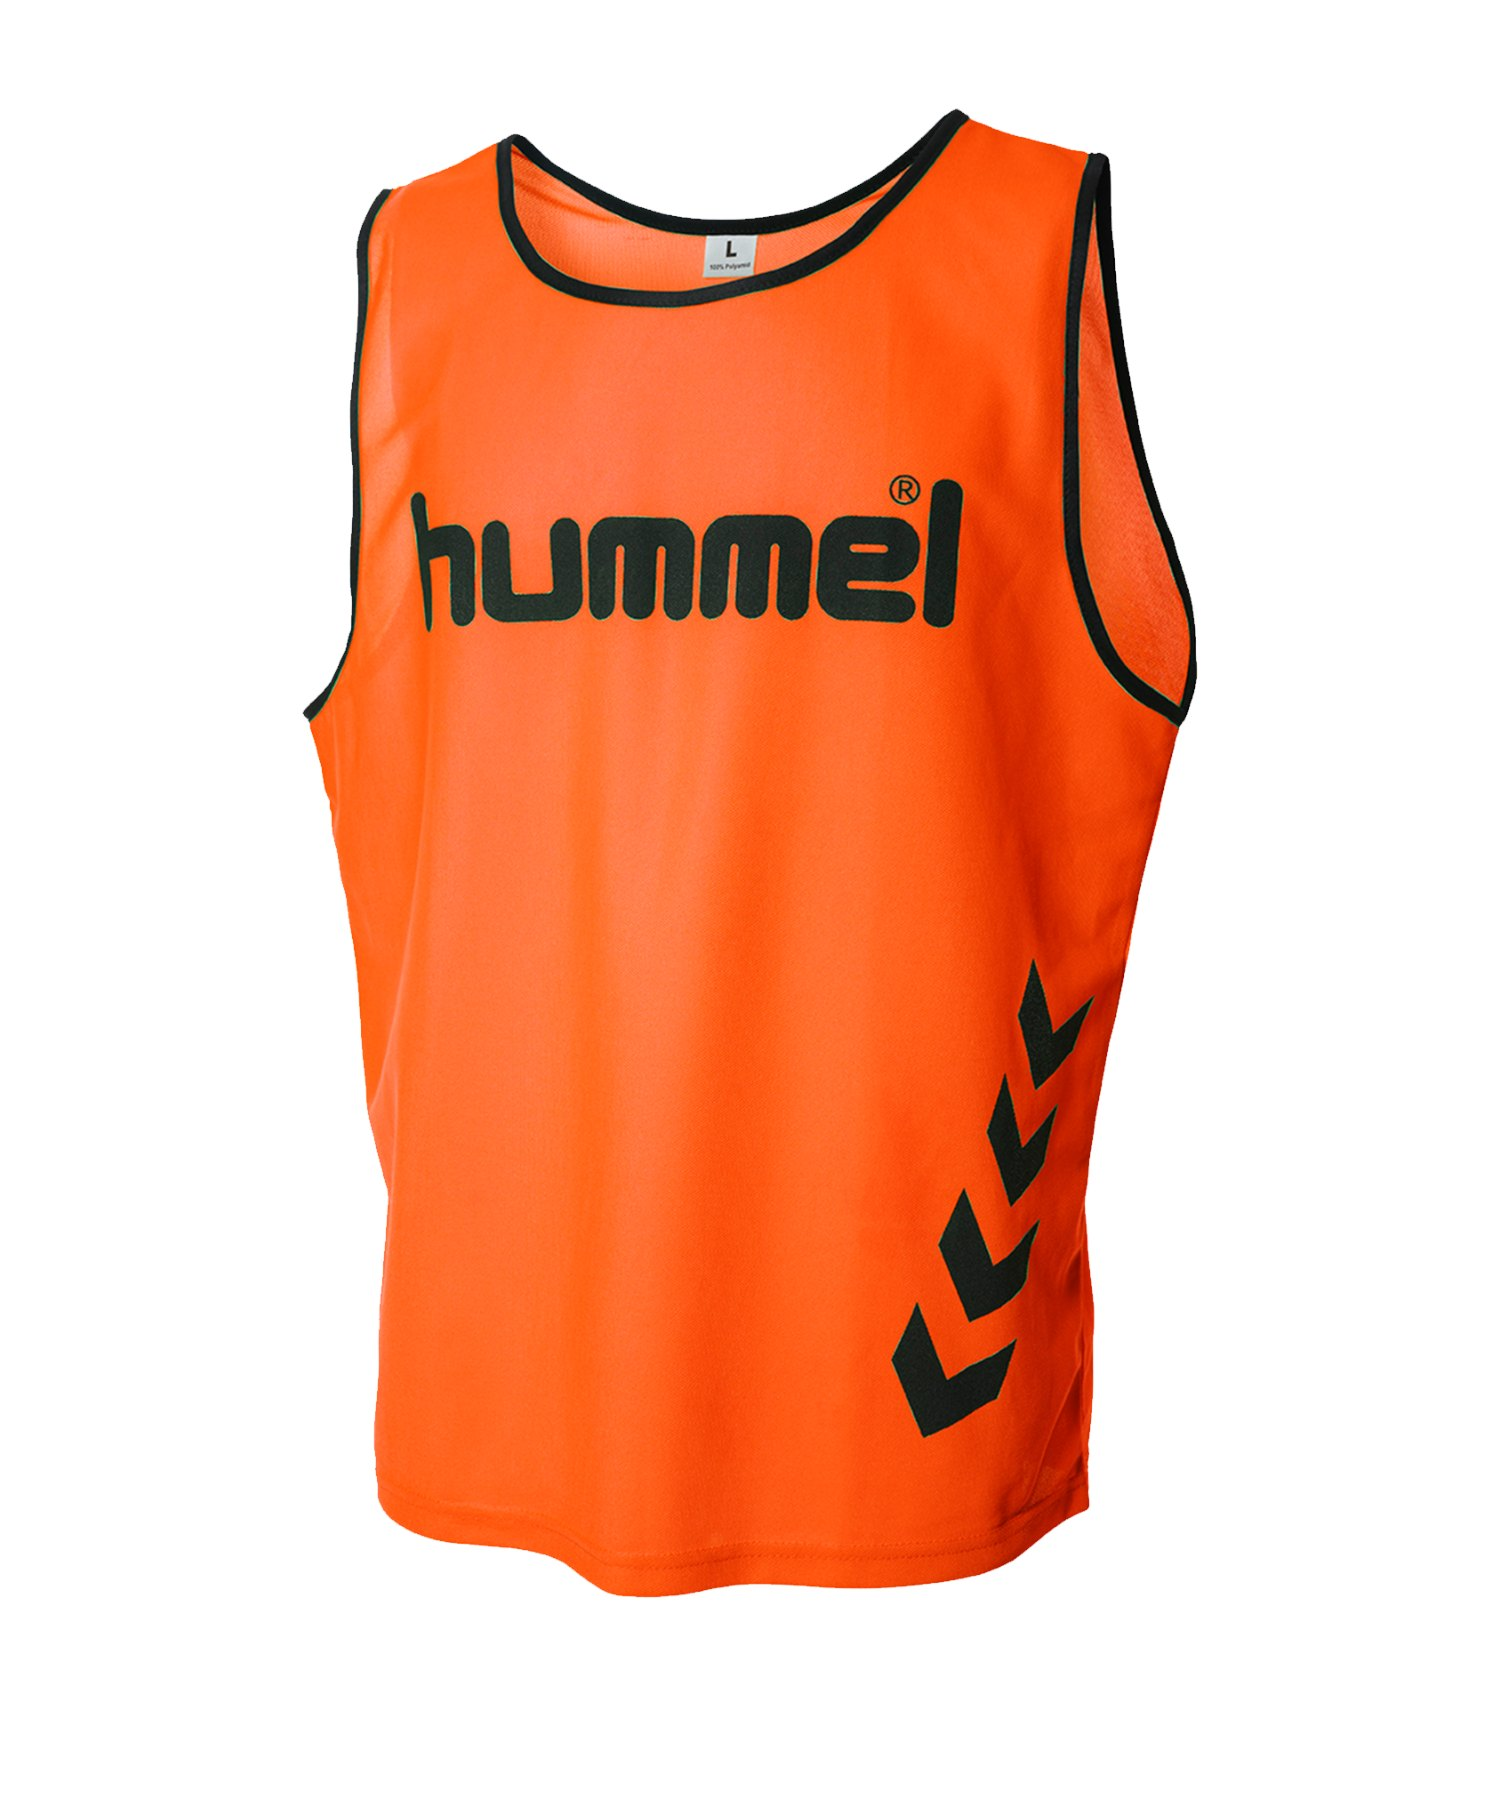 Hummel Kennzeichnungshemd Bib Kids F5179 - orange